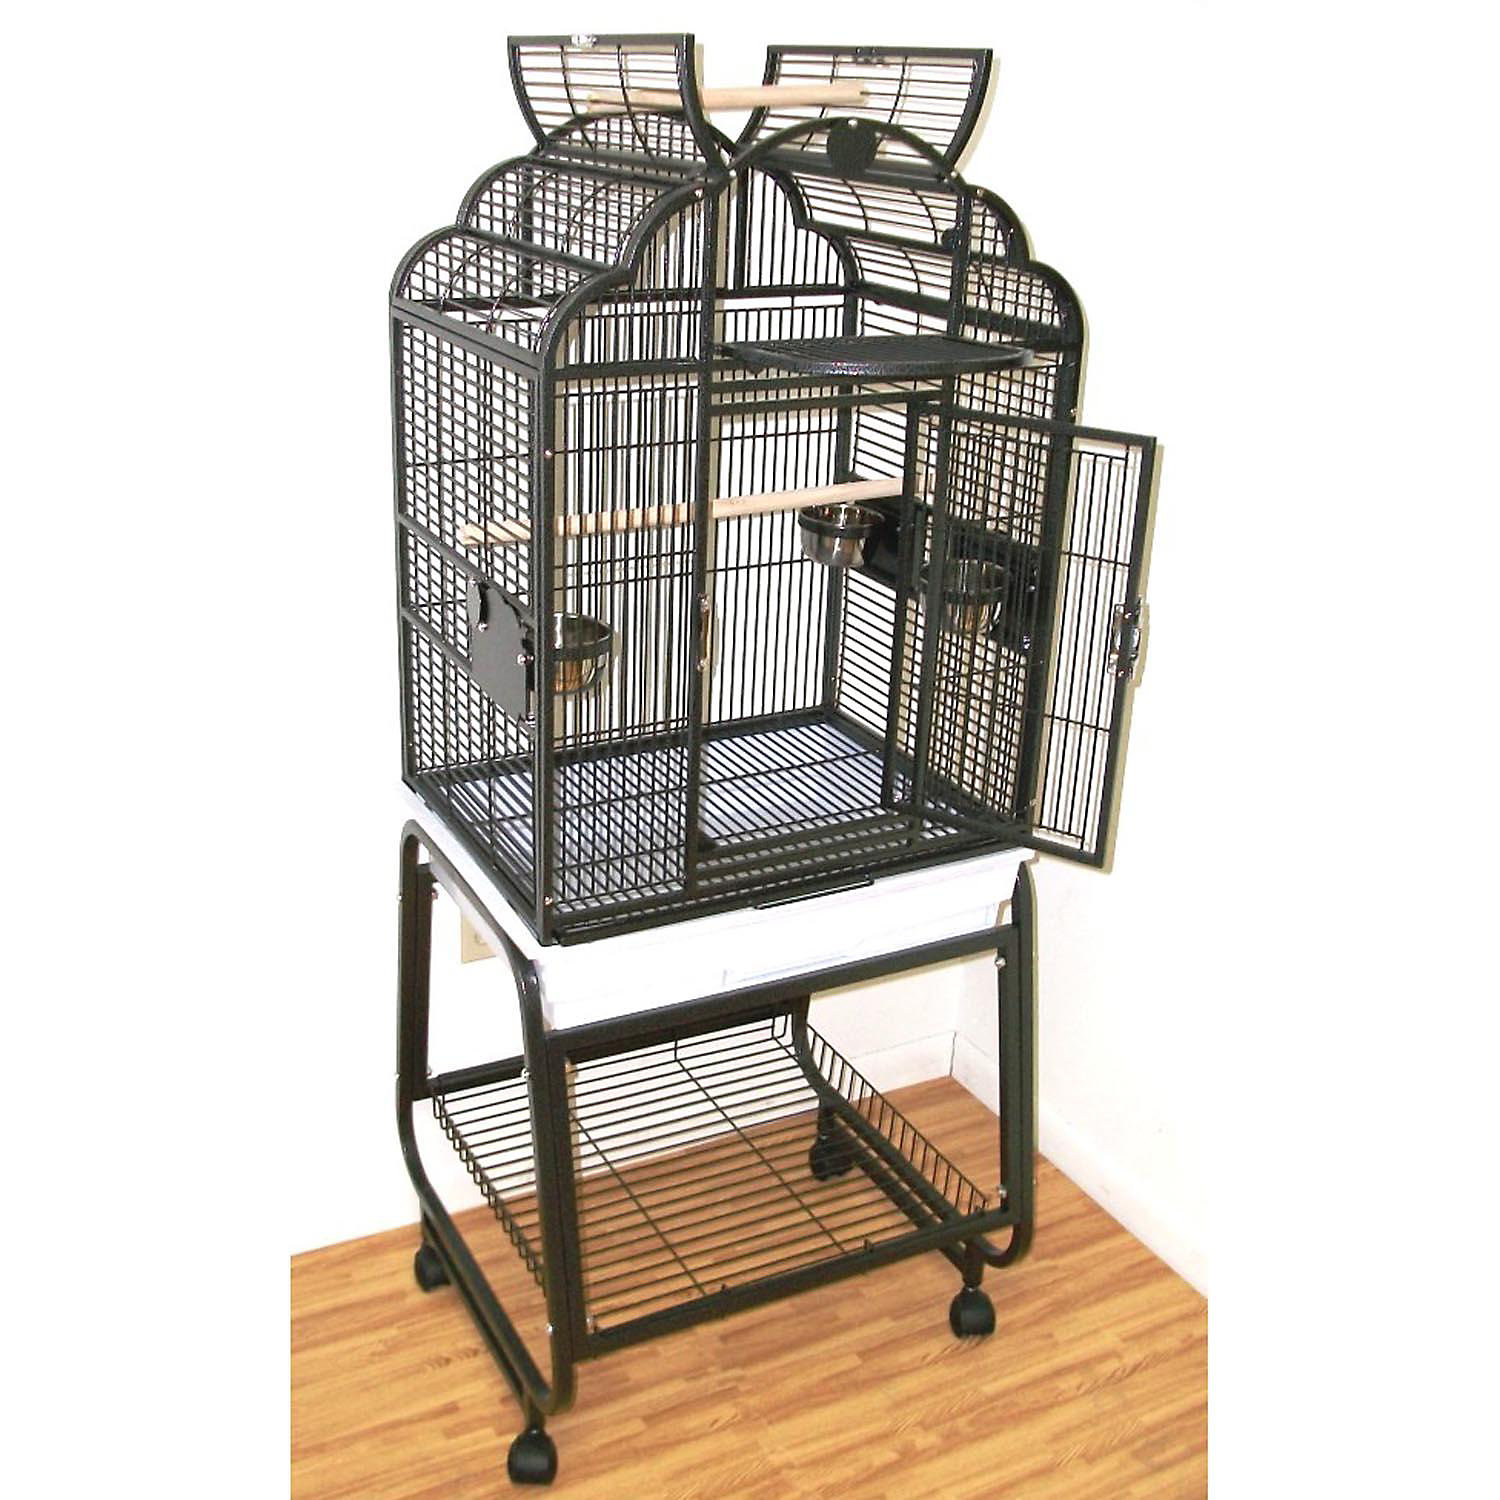 HQ Beige Opening Victorian Top with Cart Stand Bird Cage 22 L X 17 W X 55 H